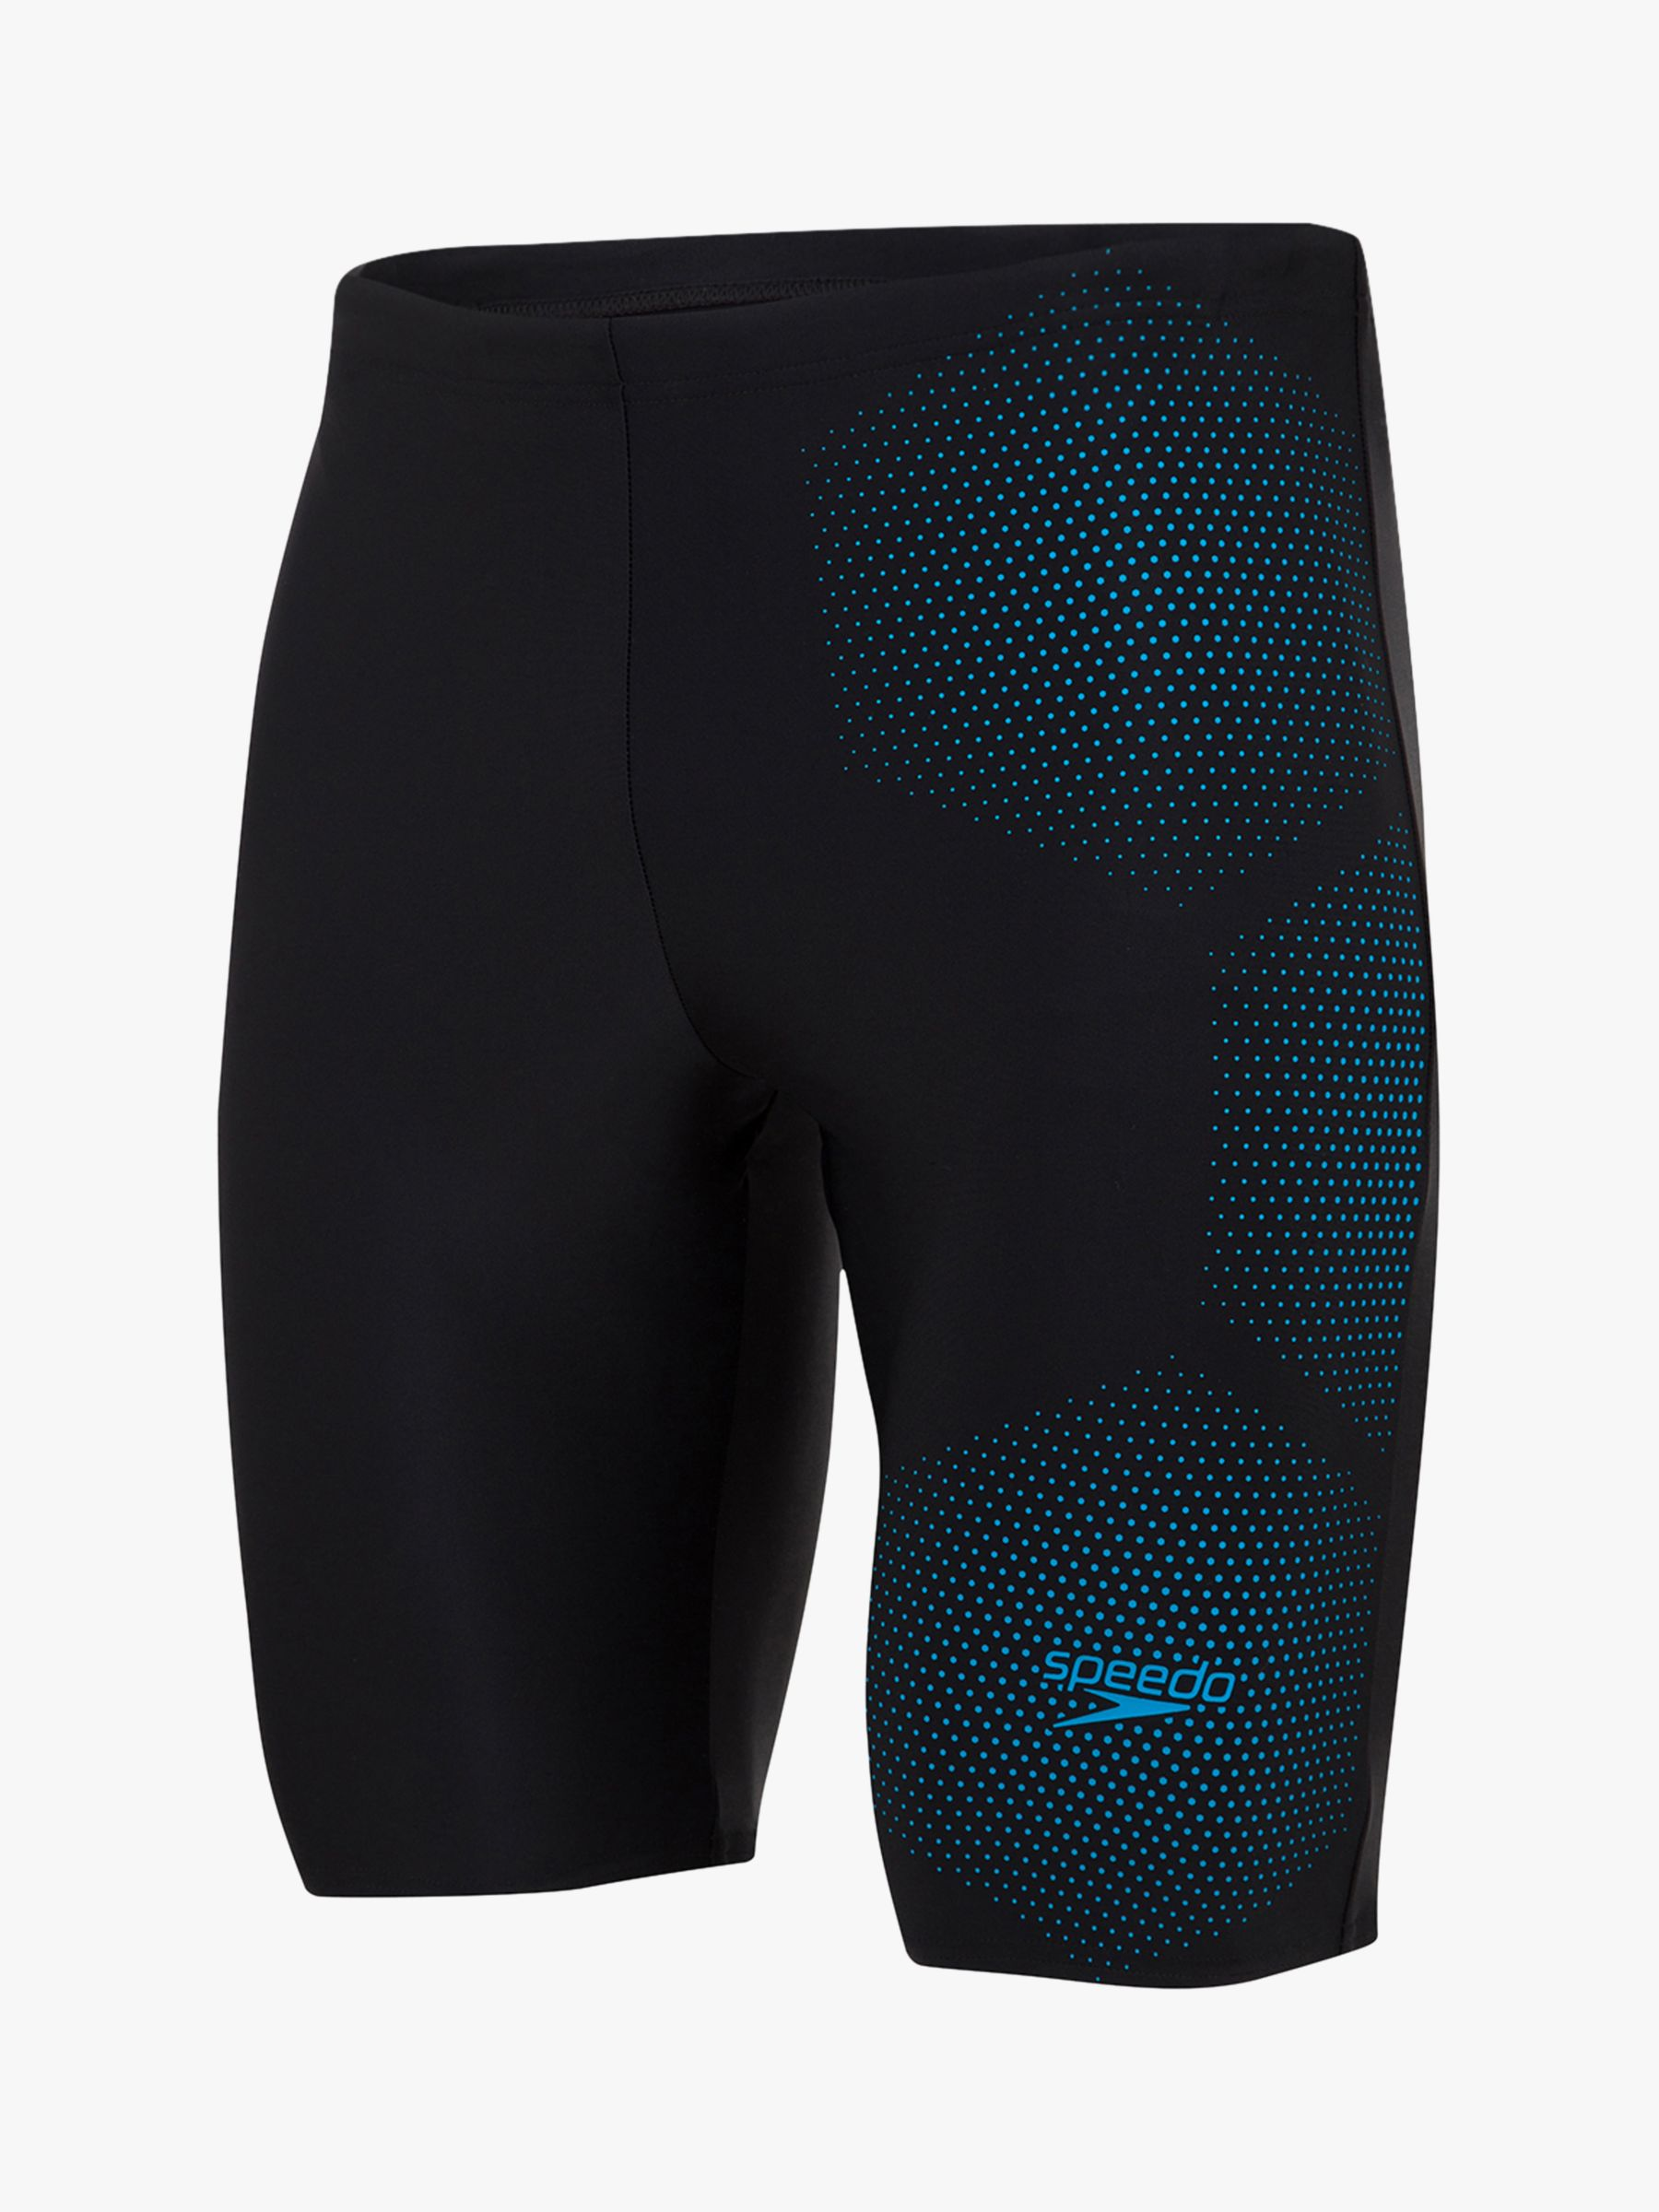 Speedo Speedo Tech Logo Jammer Swim Shorts, Black/Pool Blue